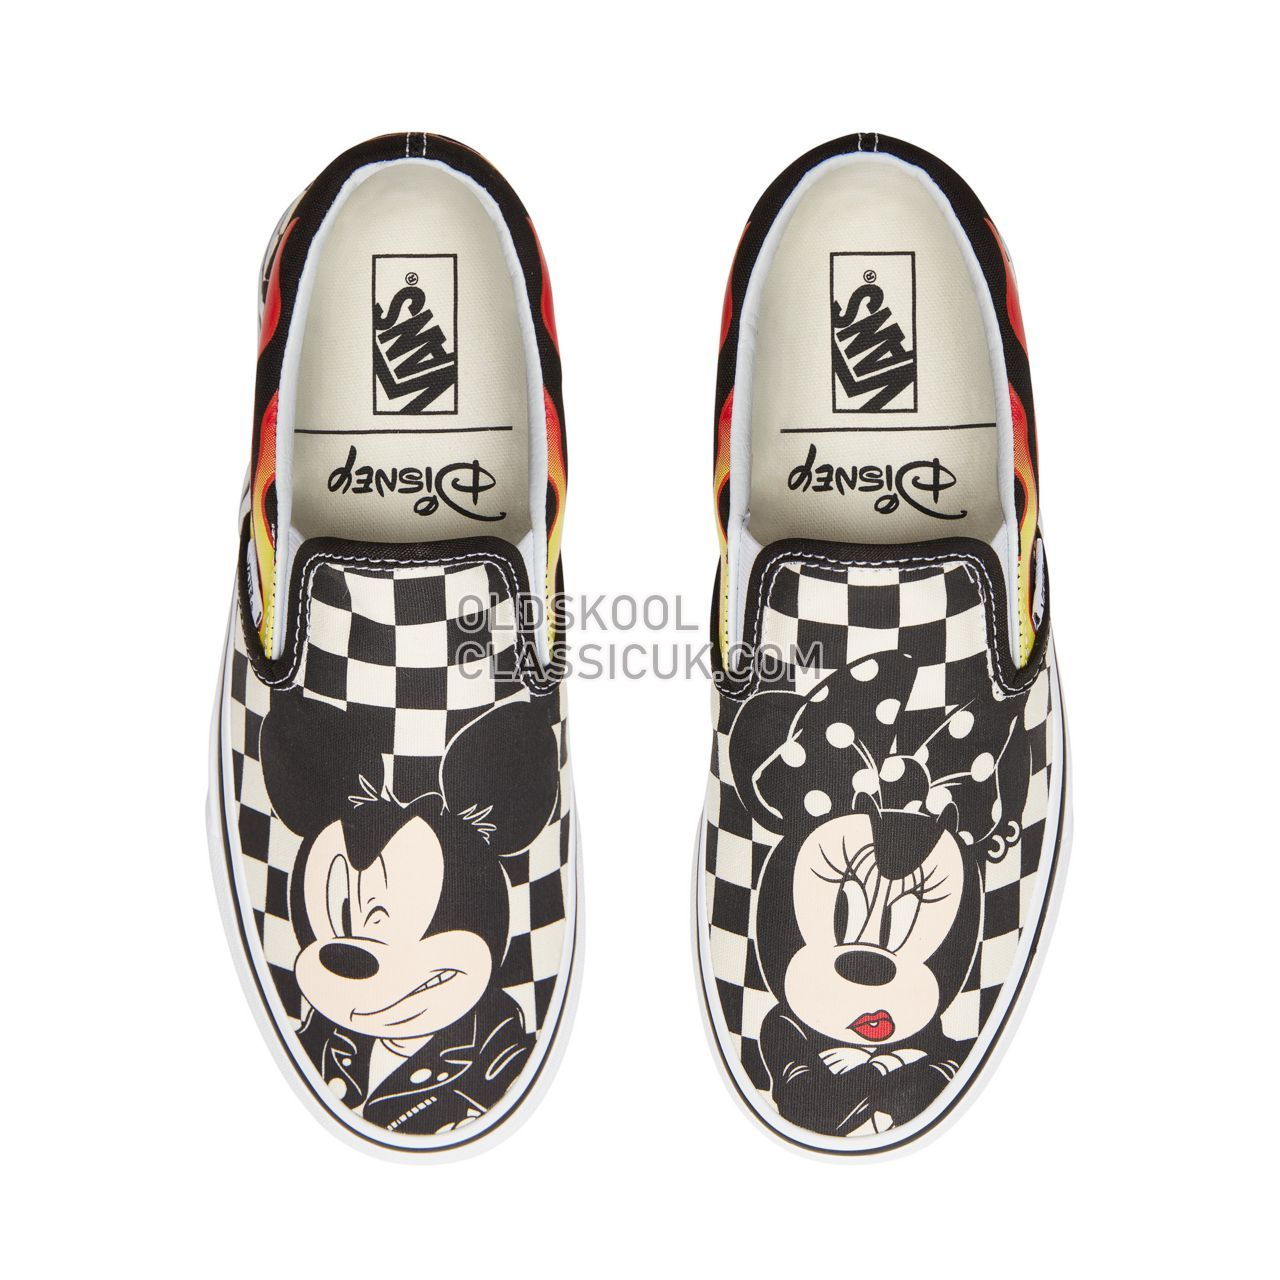 Vans Disney x Vans Classic Slip-On Sneakers Womens (Disney) Mickey & Minnie/Checker Flame VN0A38F7UJ4 Shoes